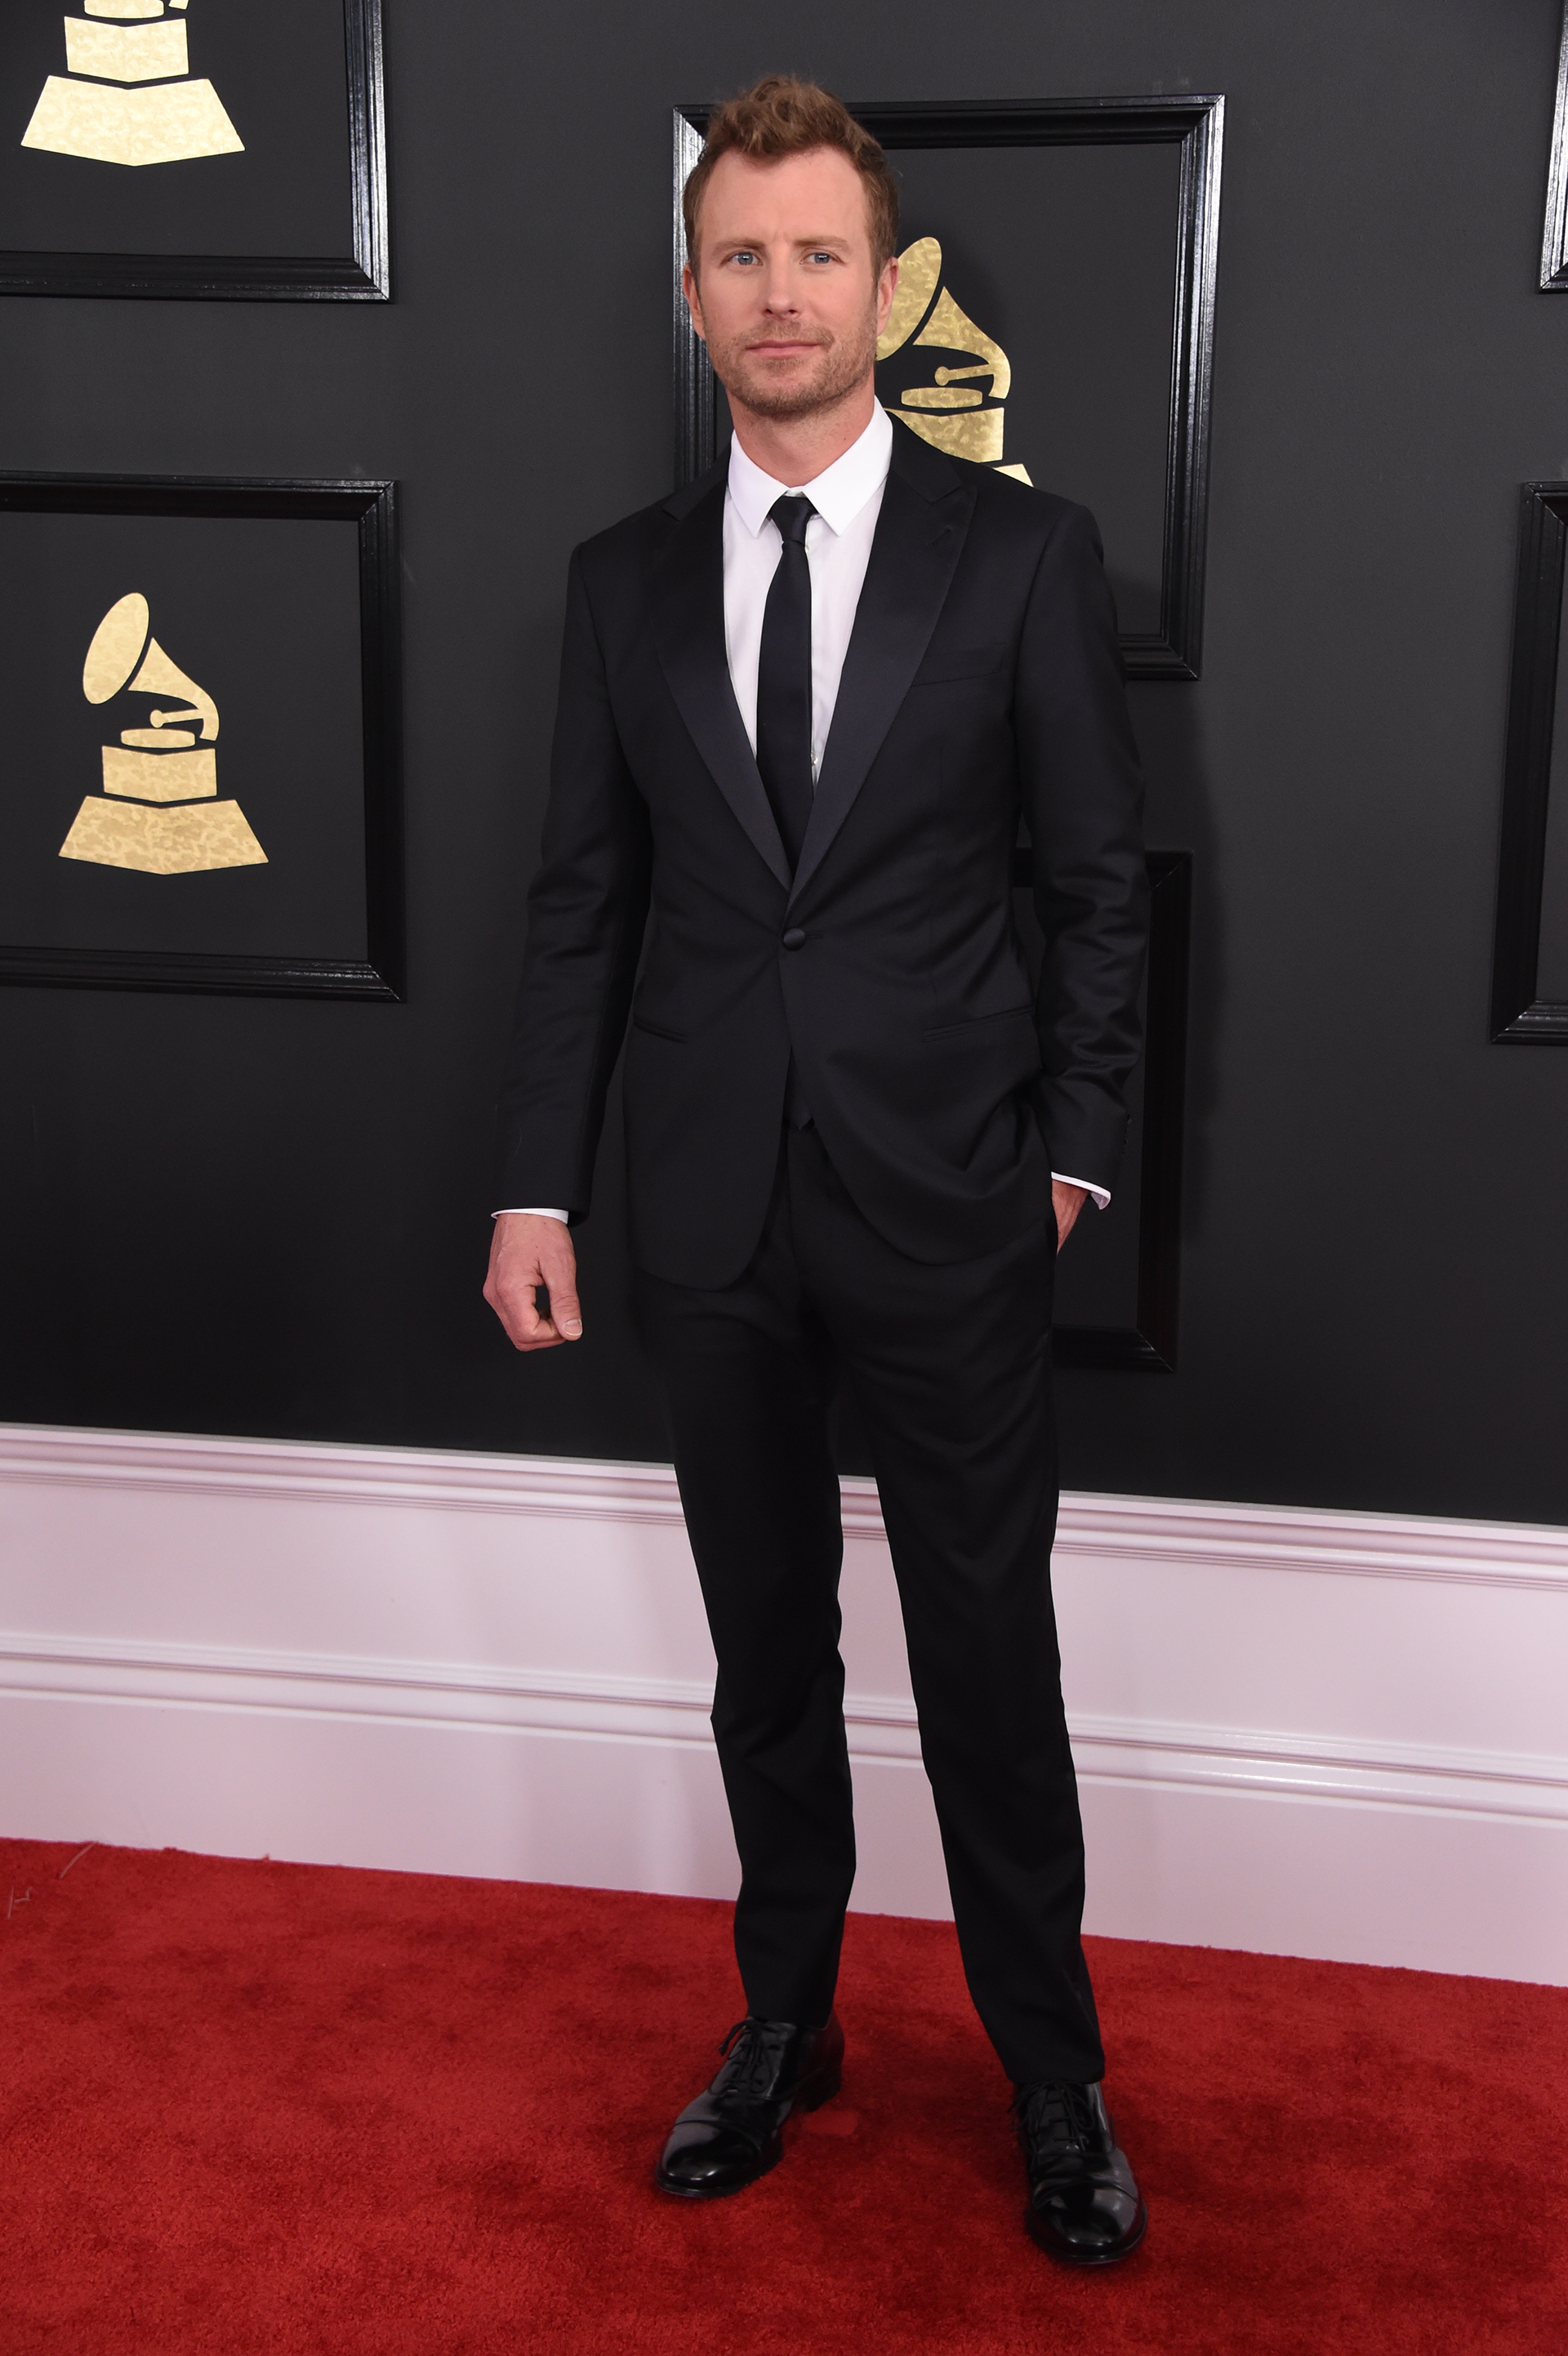 GRAMMYs 2017: Dierks Bentley